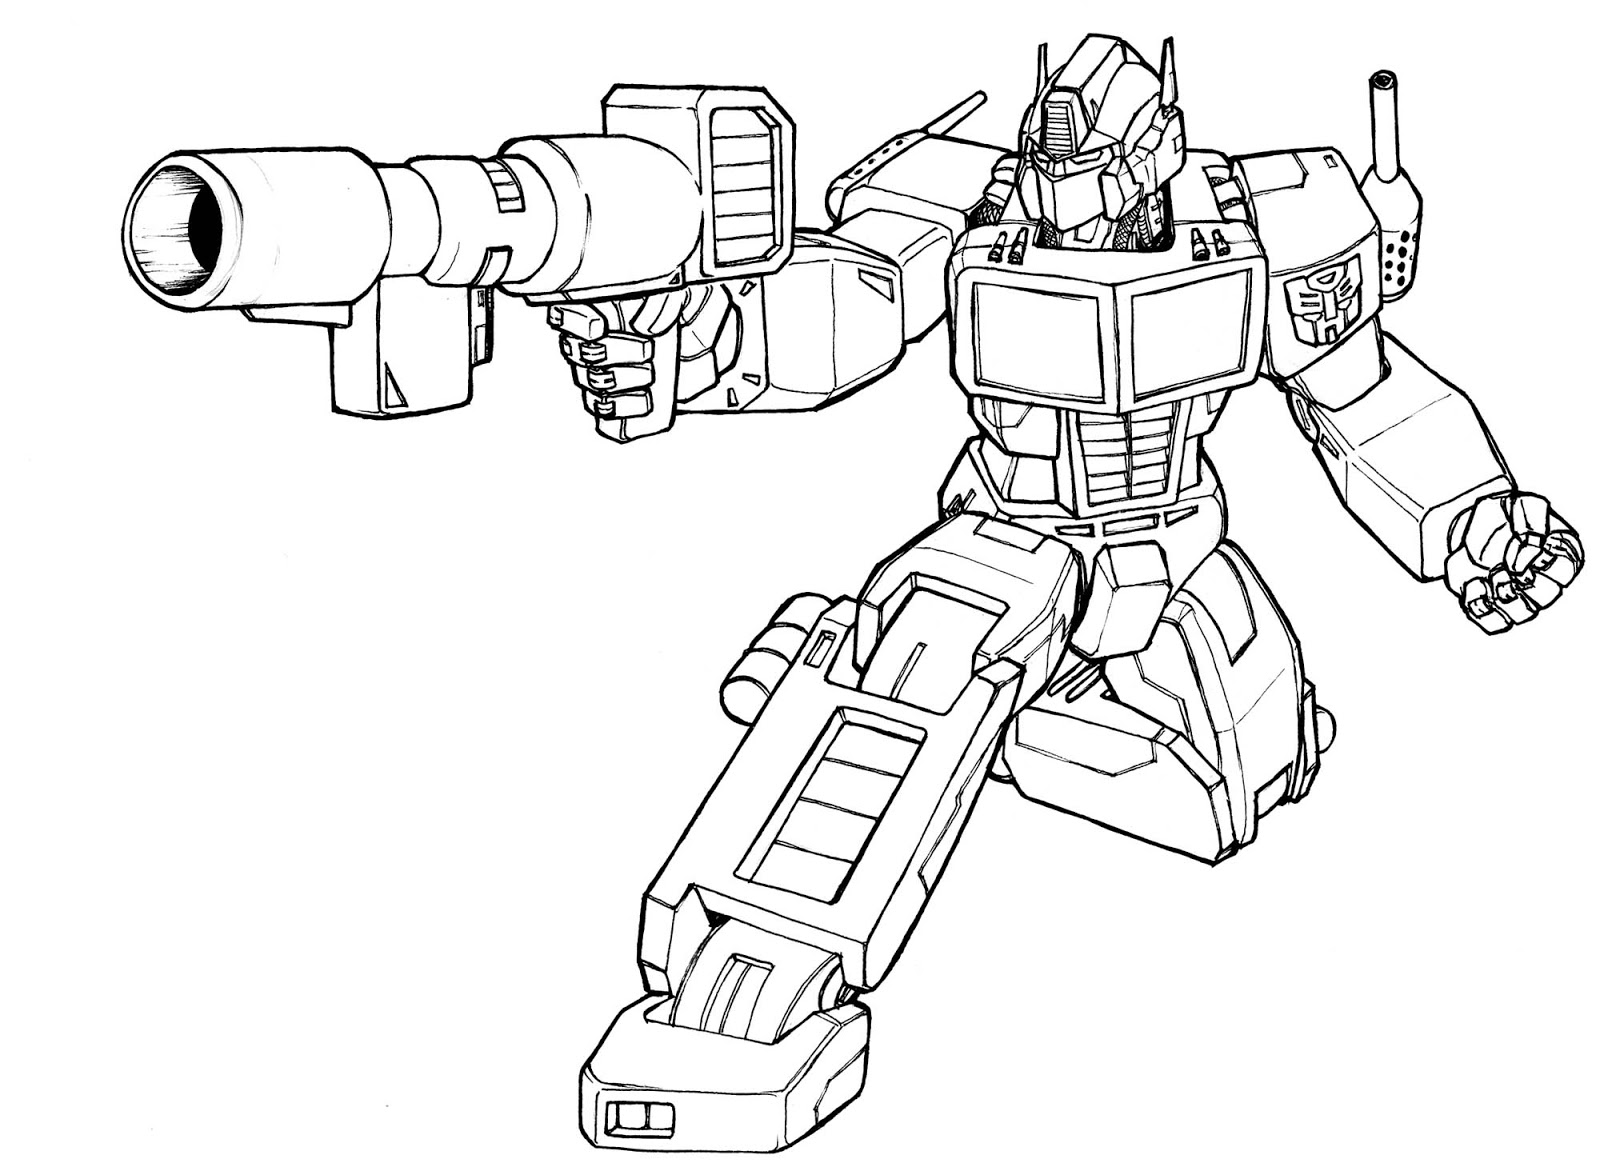 Printable Transformers Coloring Pages - Democraciaejustica